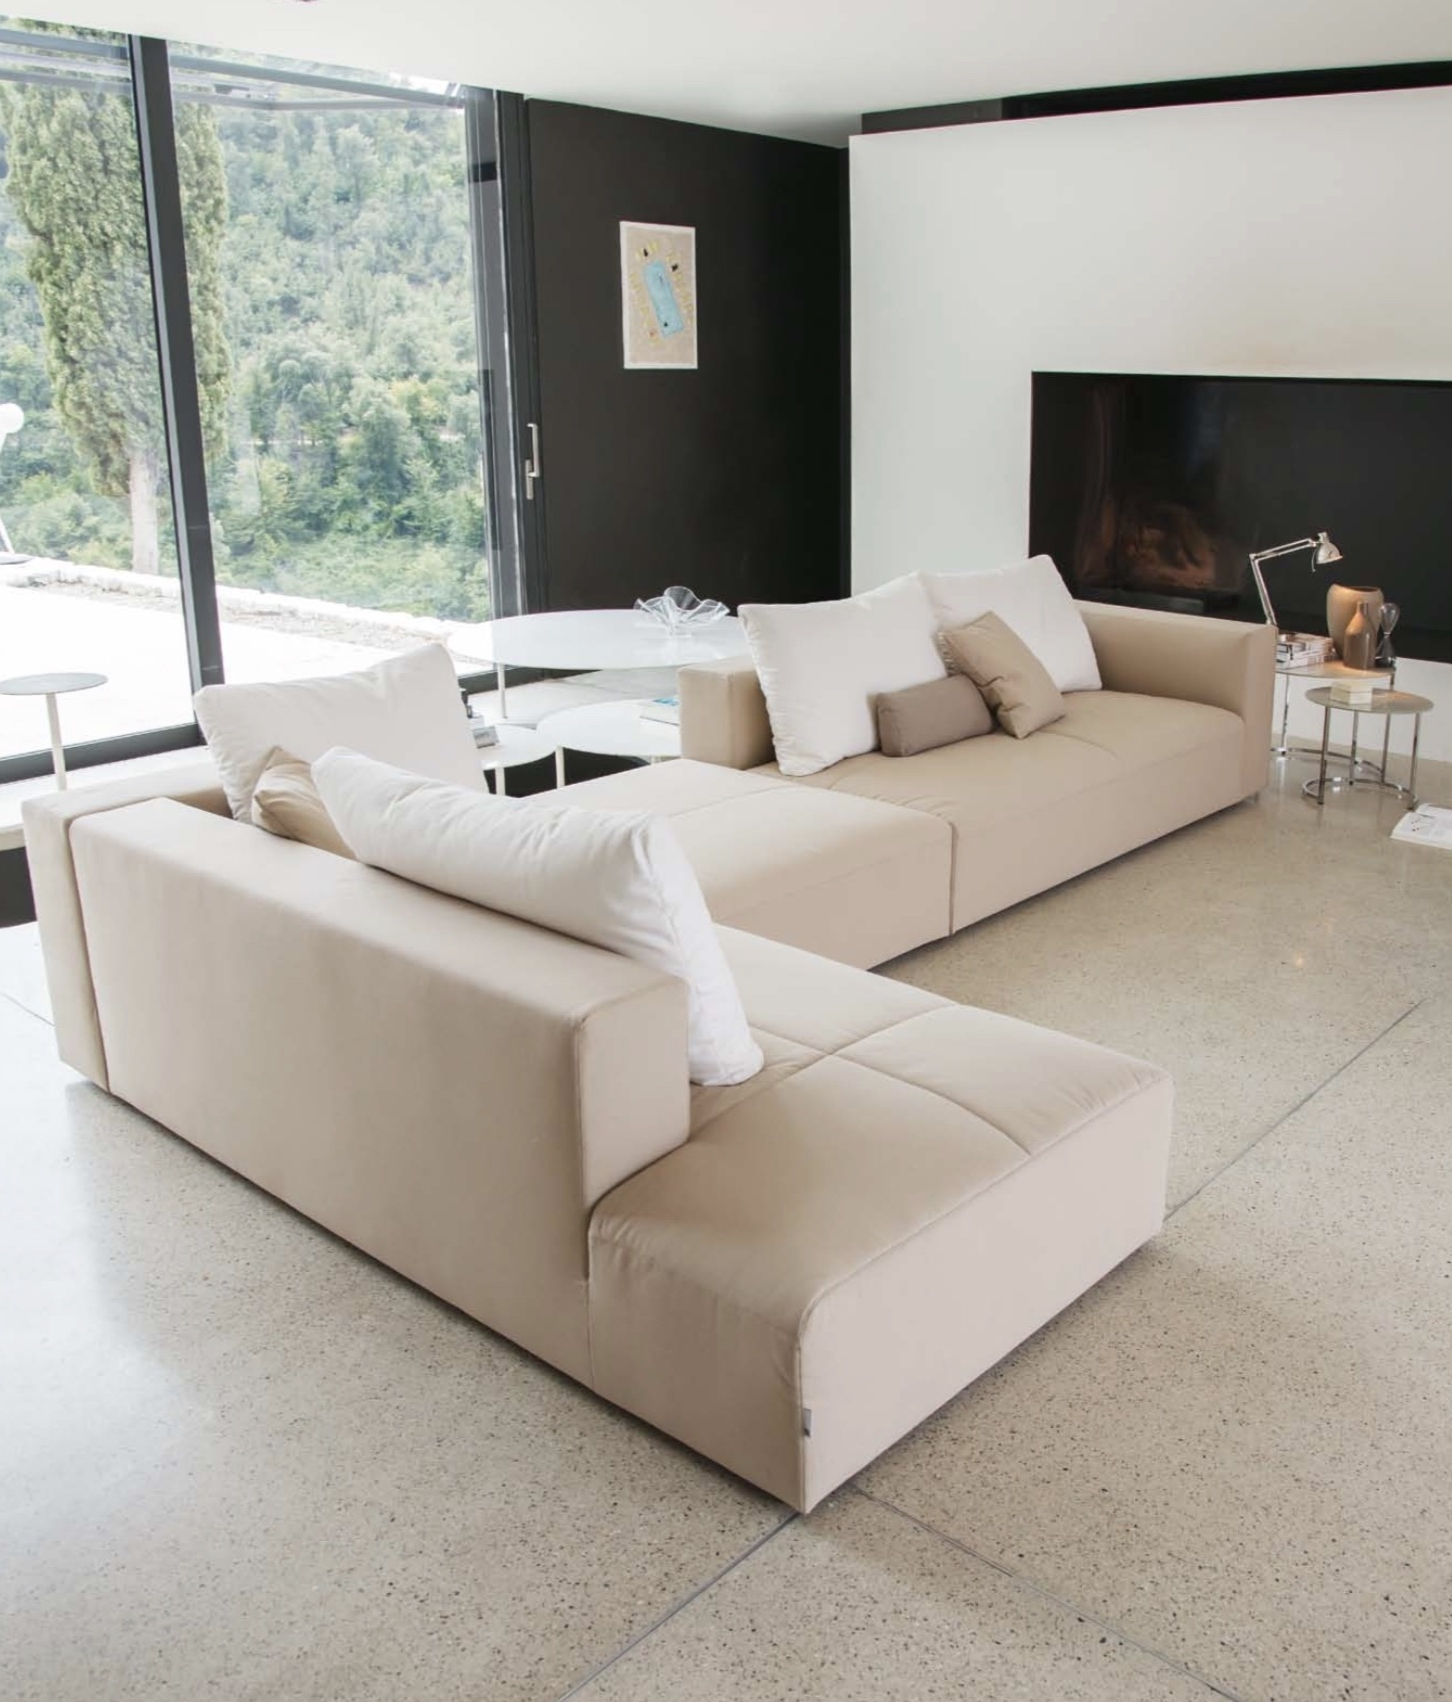 Widely Used Italian Modern Sofas And Sectional Sofas (View 20 of 20)